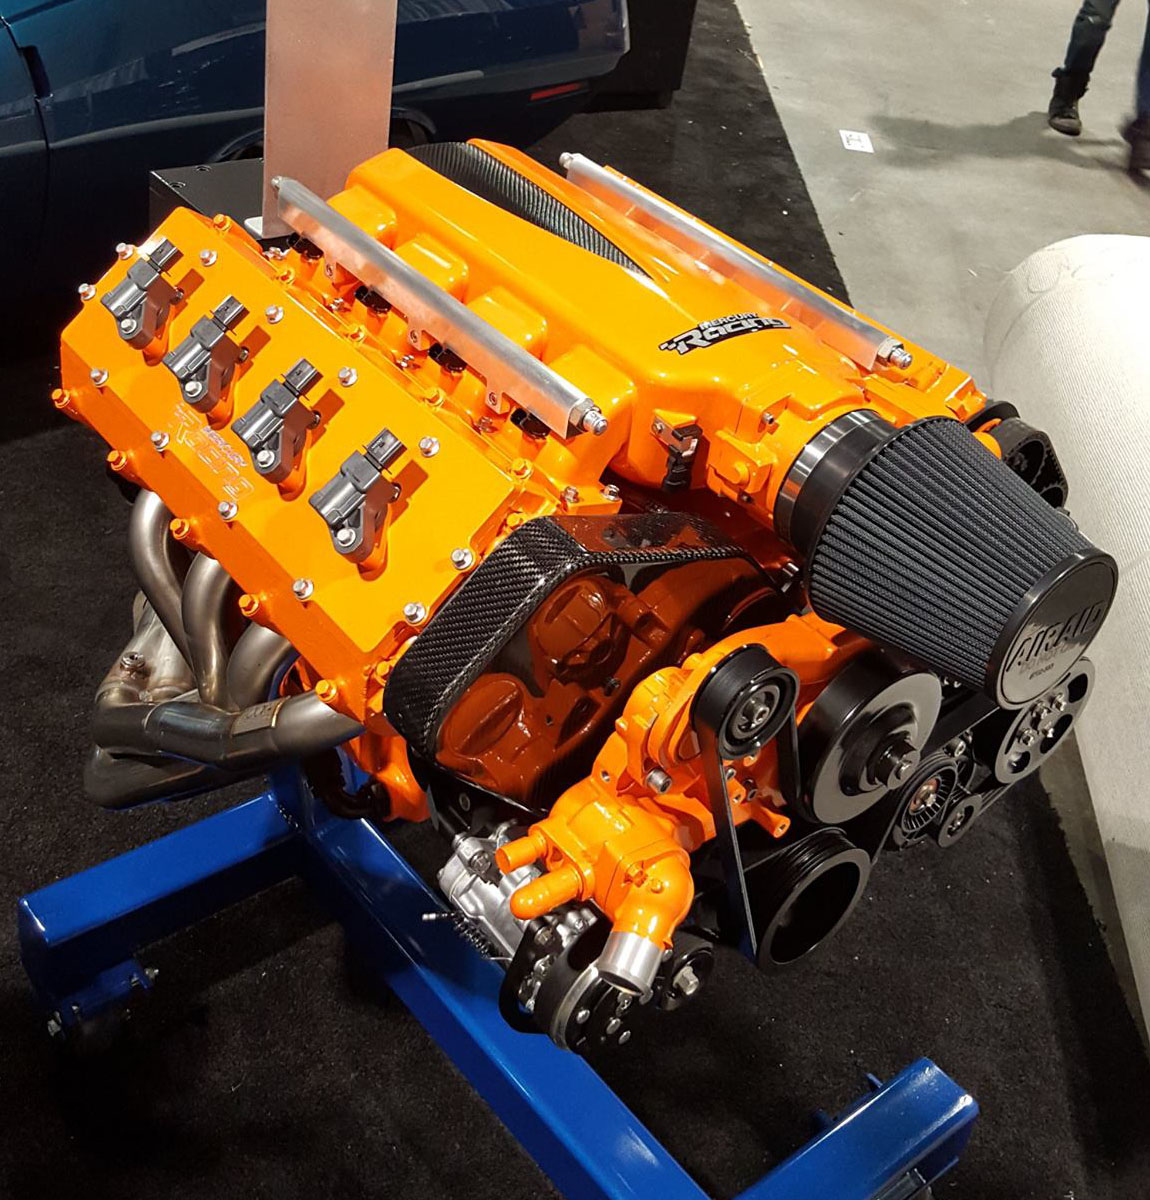 Ls7 Engine Design: Custom Hot Rod With A DOHC LS7